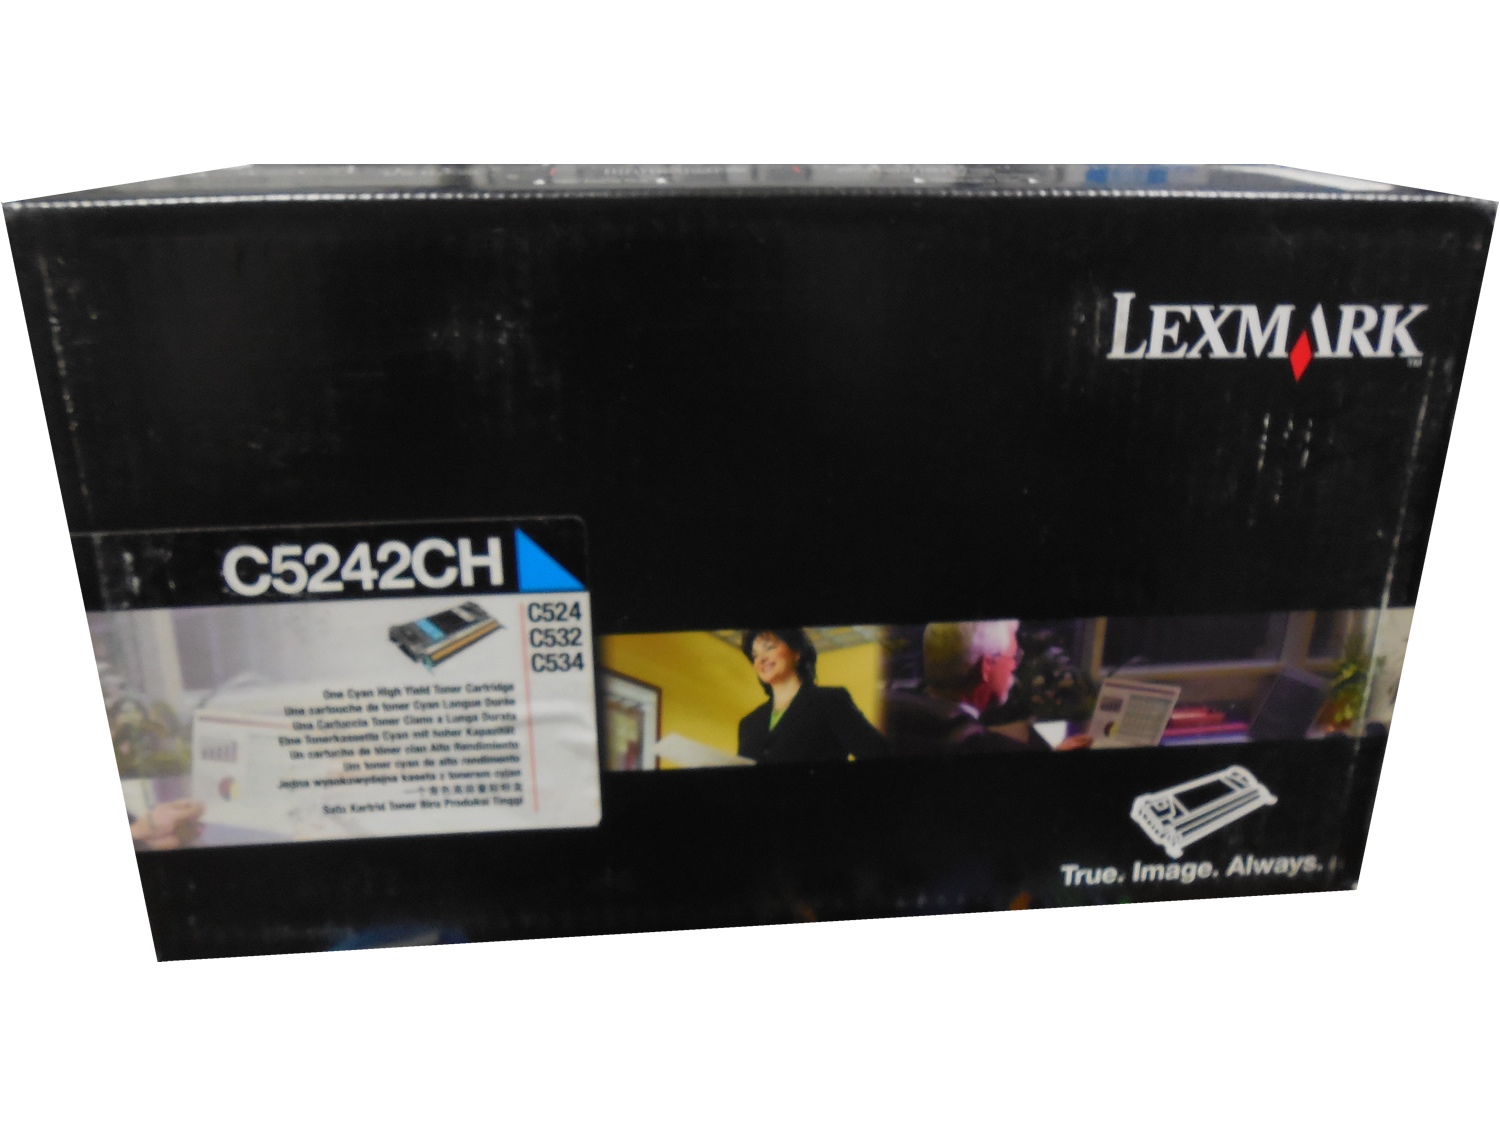 Lexmark C930H2CG Cyan High Yield Toner Cartridge 24k C935 Series Genuine OEM